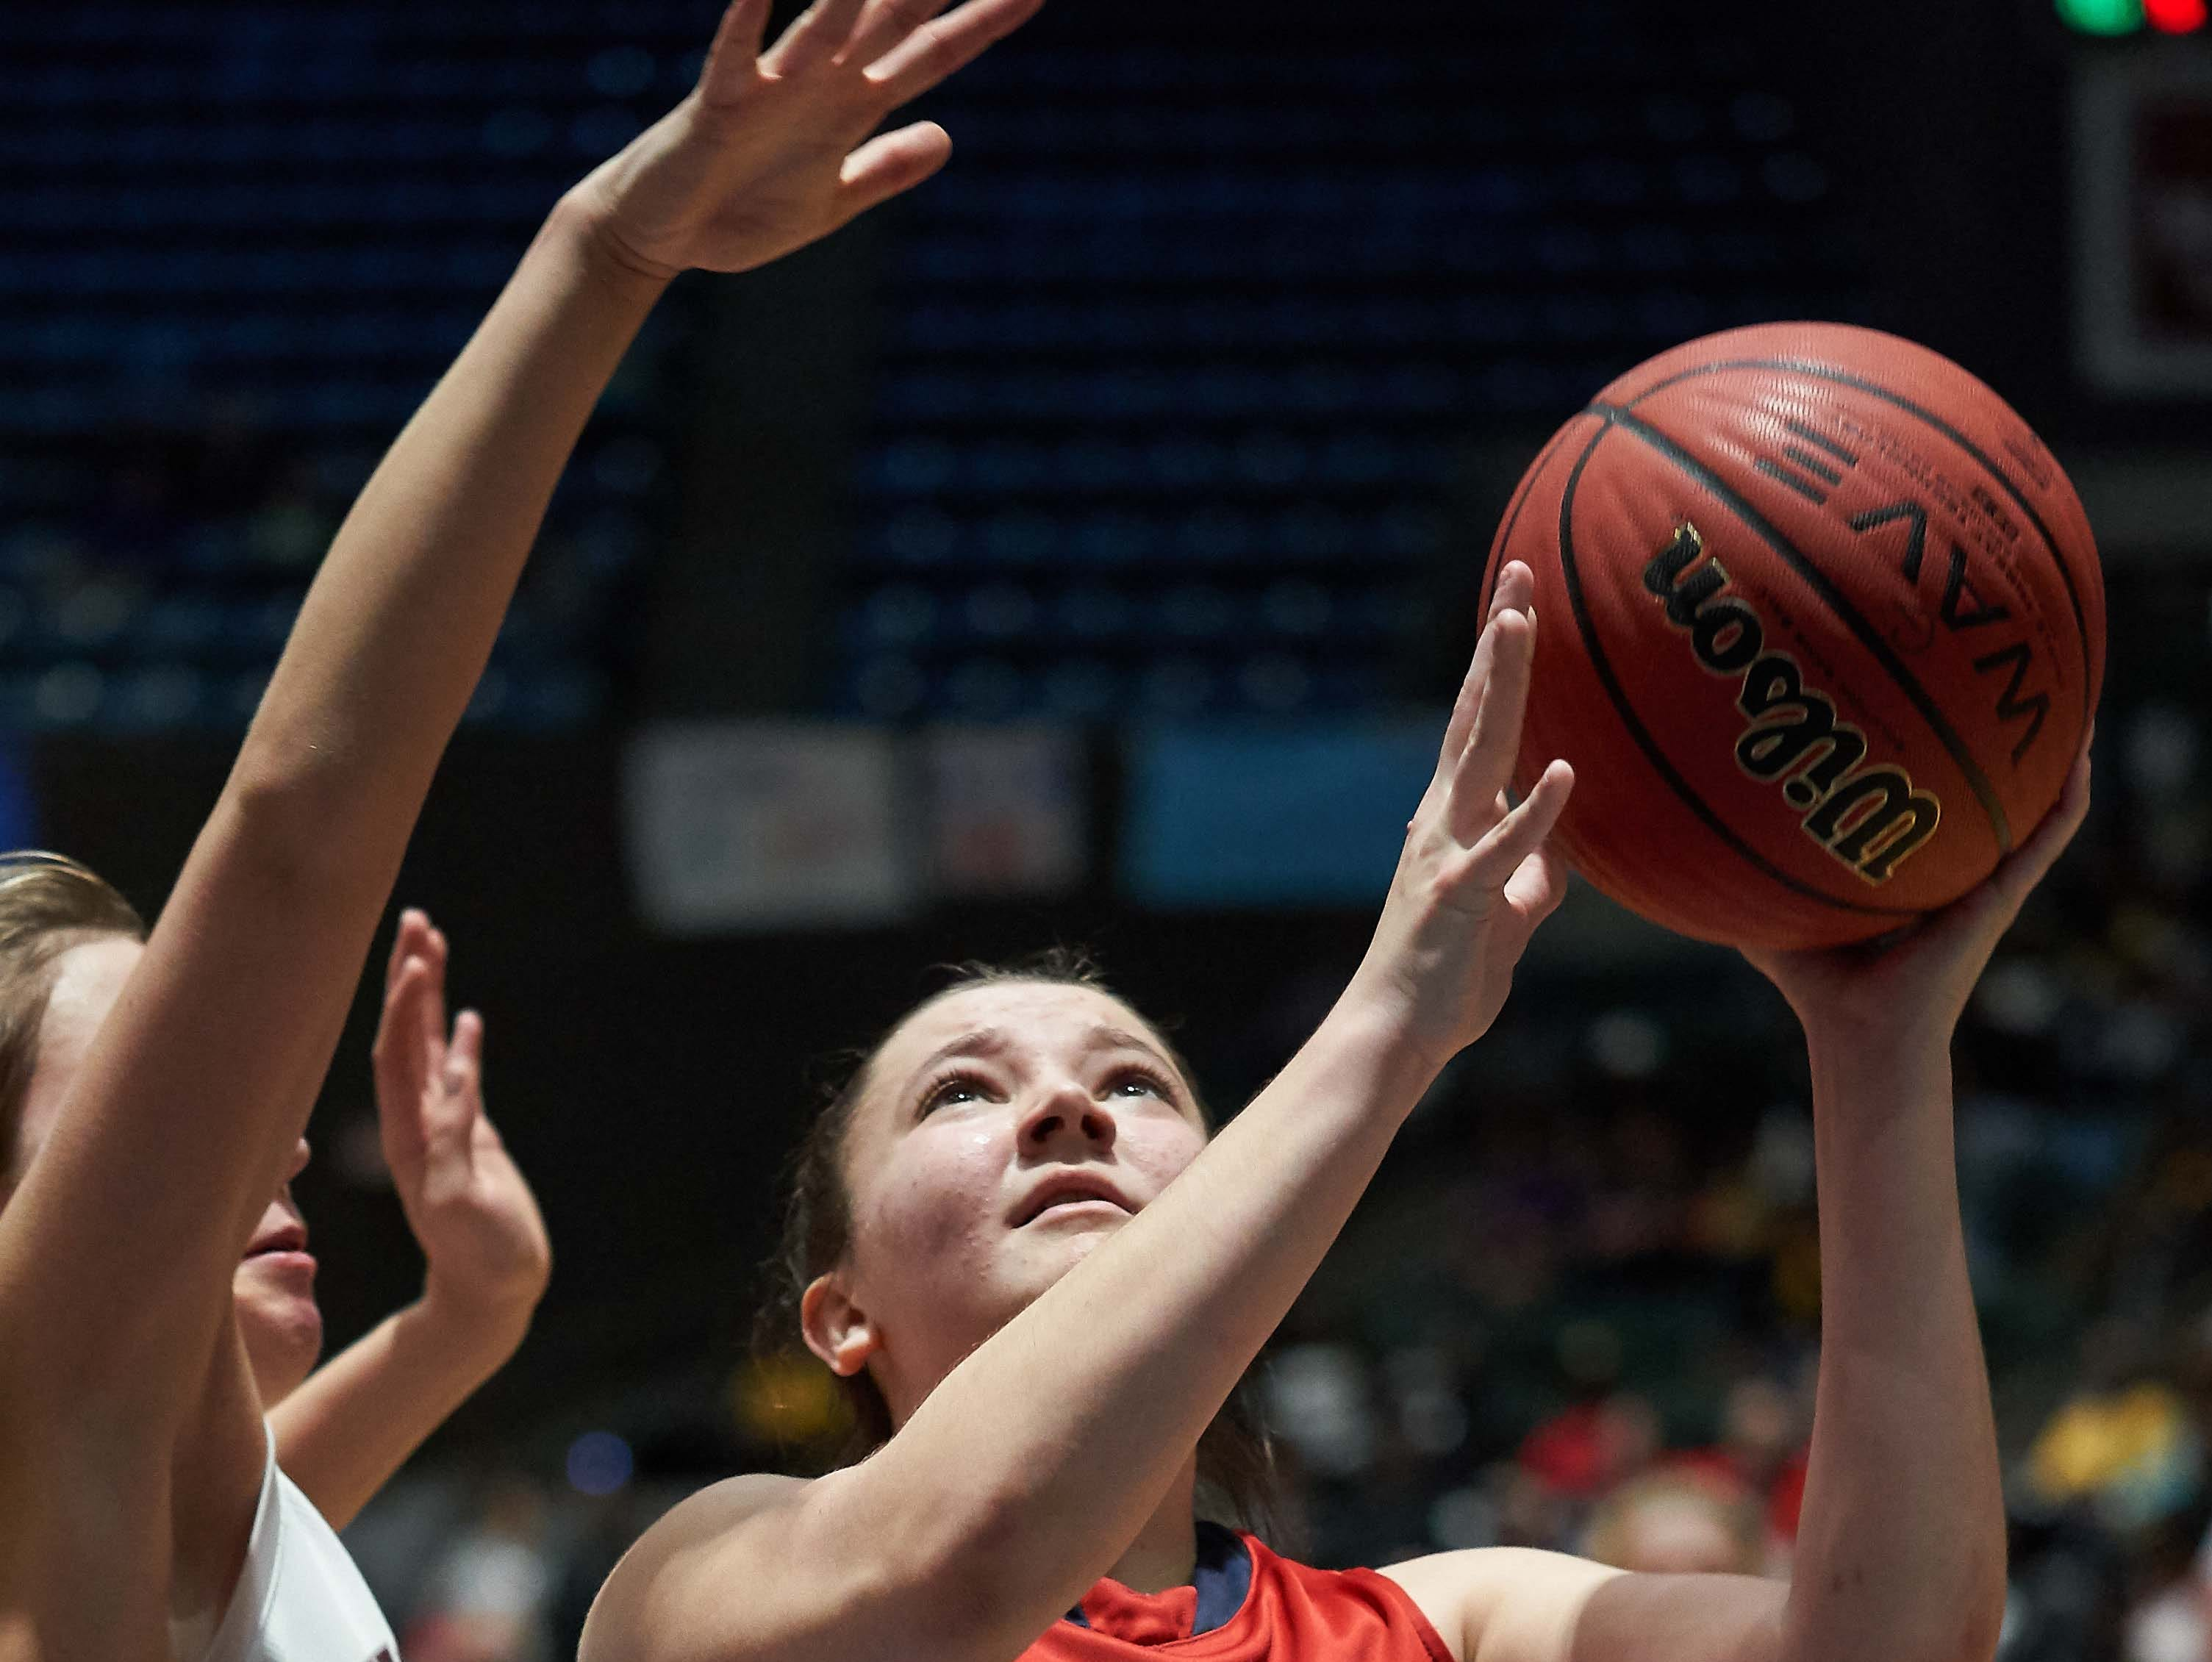 Belmont's Lacie Walker shoots(12) during the MHSAA 3A Girls Basketball Championship Finals held at the Mississippi Coliseum in Jackson, MS, Saturday March 9th, 2019.(Bob Smith)